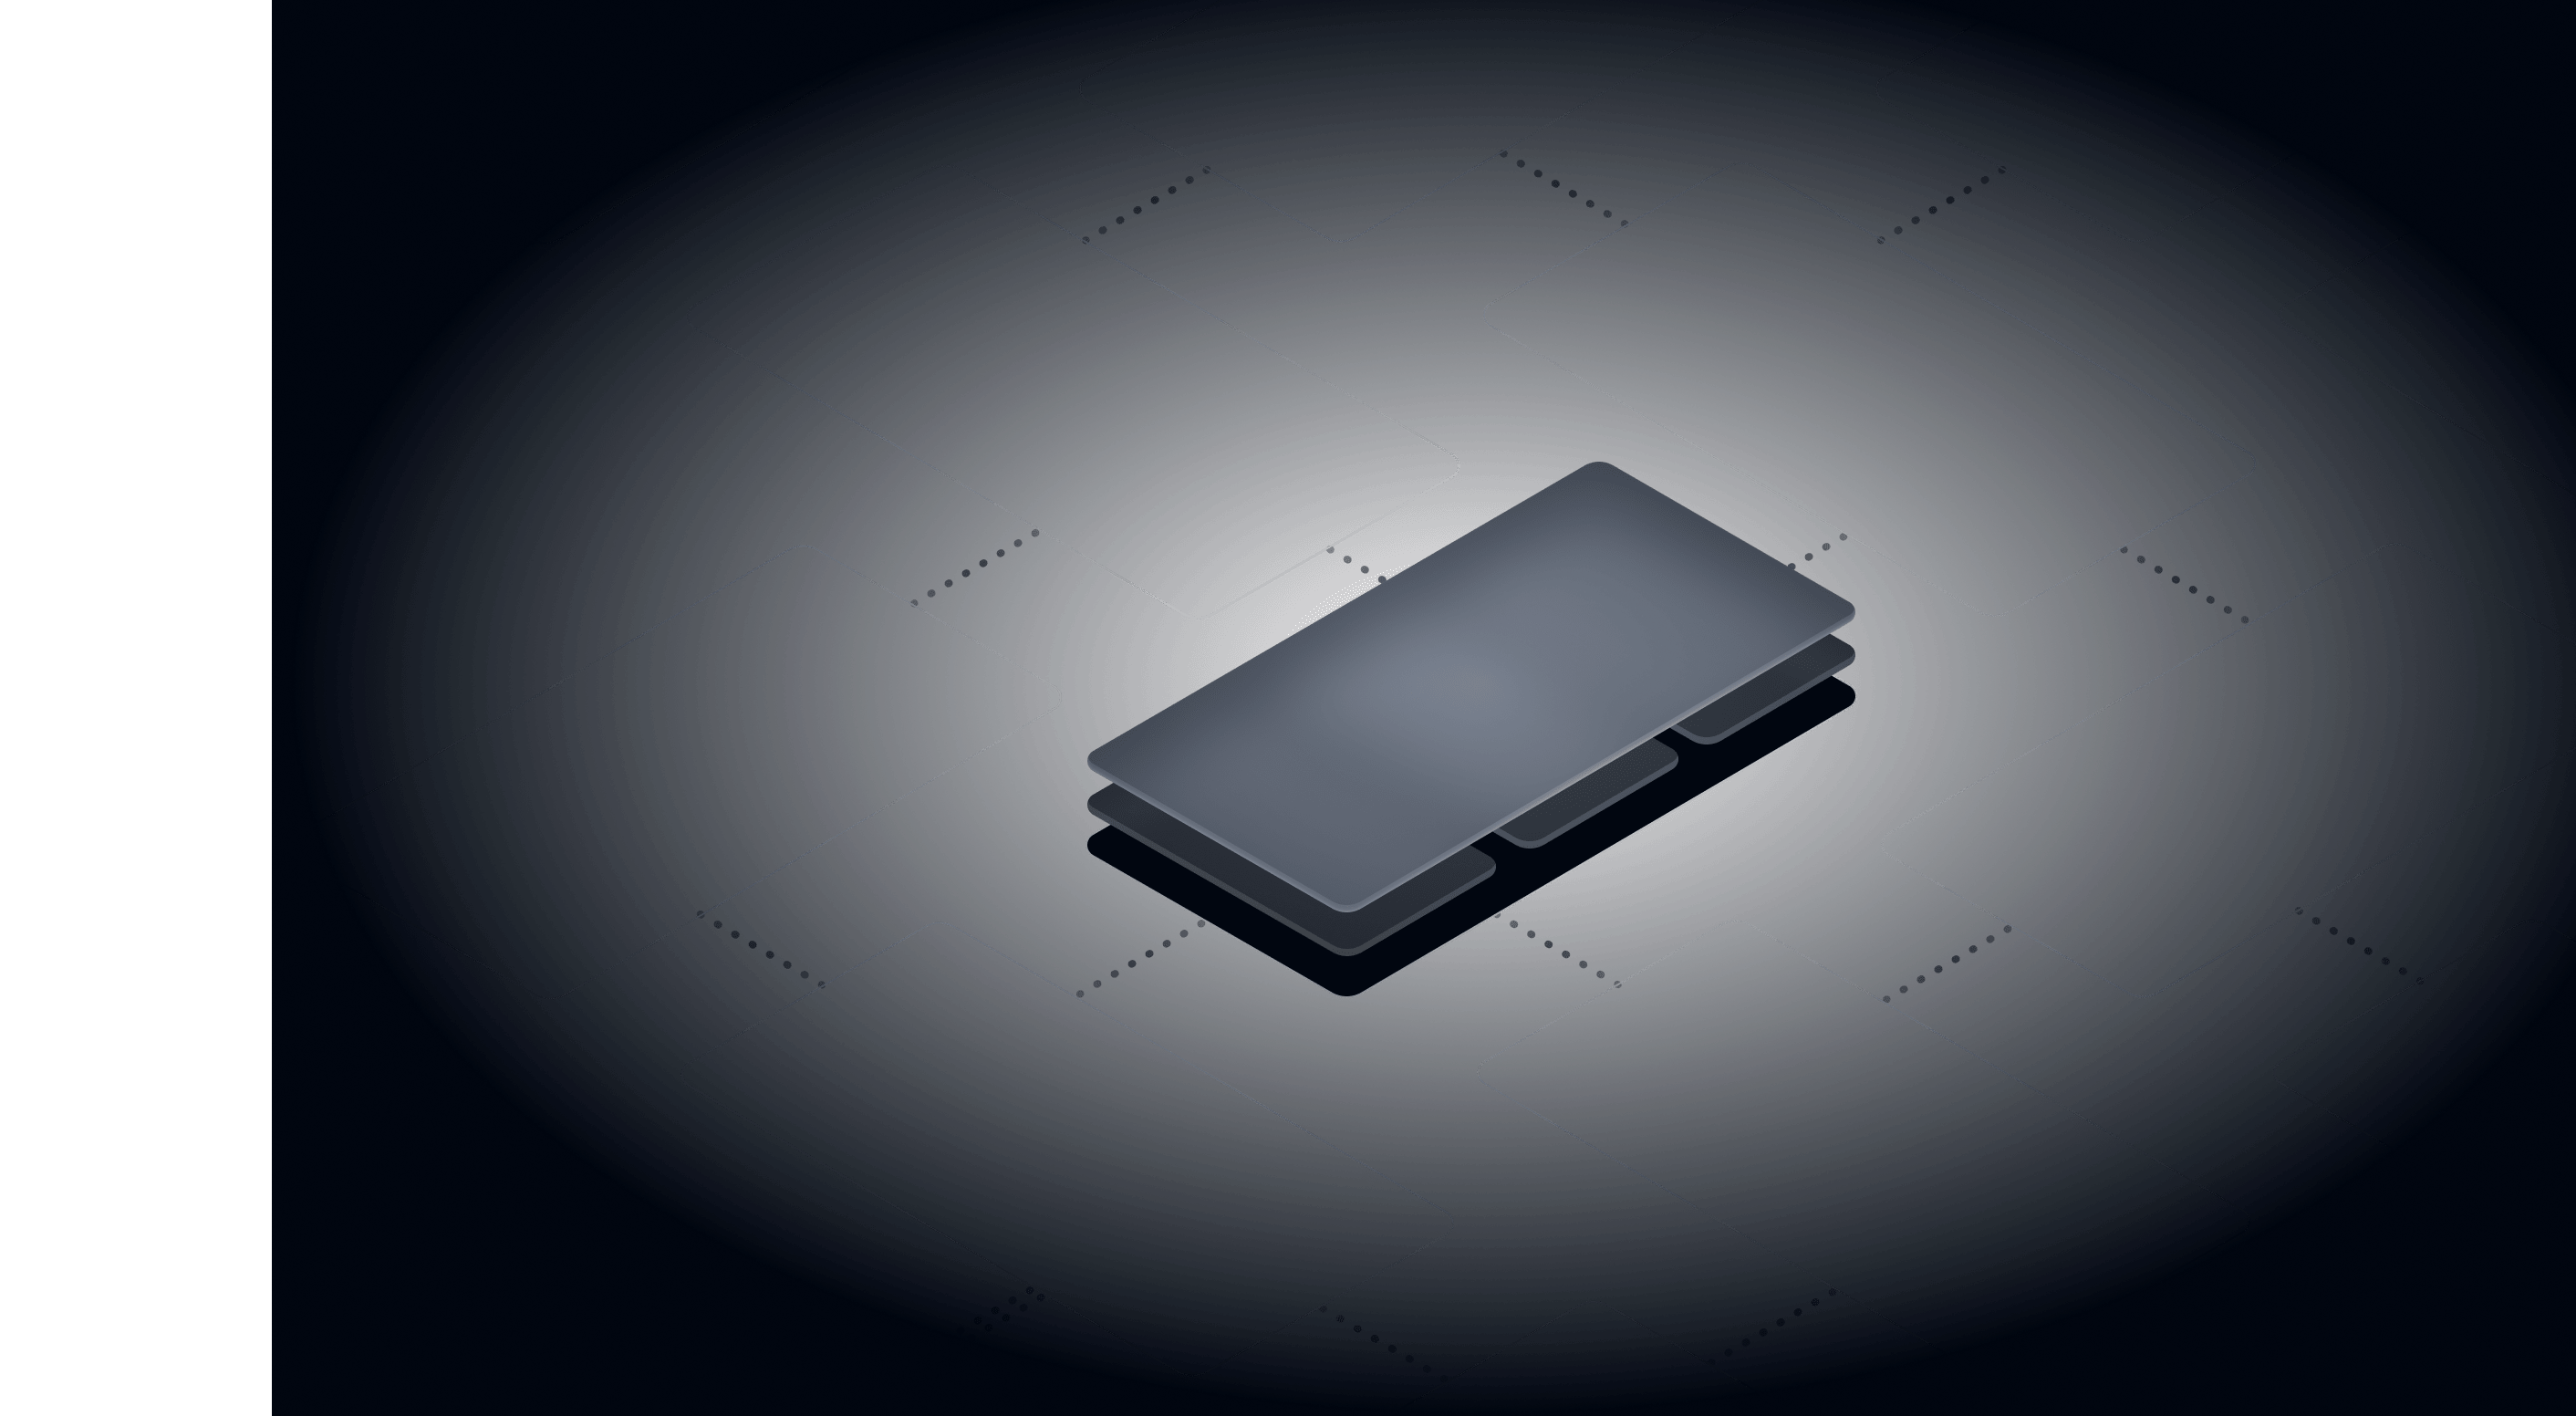 futuristic phone outlines connected by dots floating on a dark background